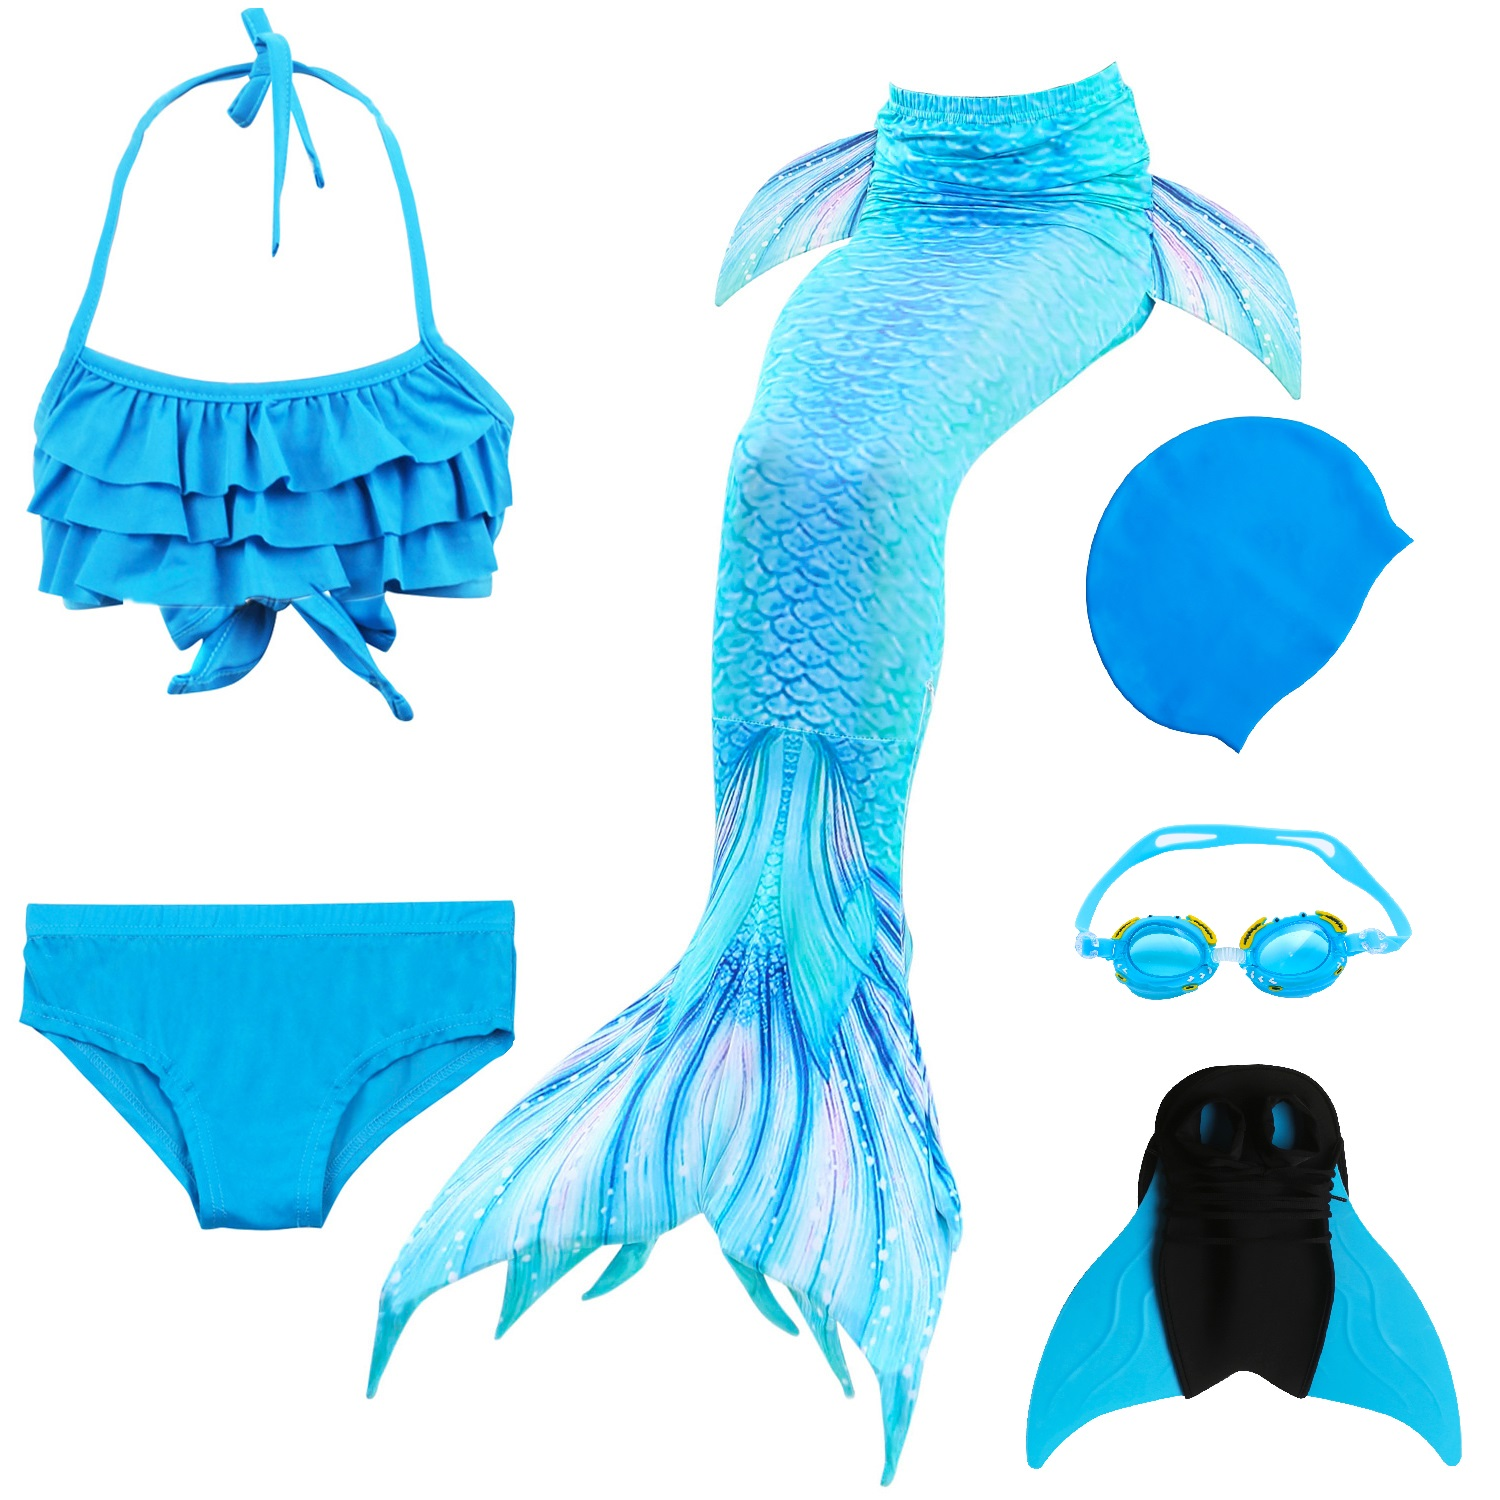 Image 5 - Kids Mermaid Swimsuit Bikini Girls Mermaid Tail with Finned Swimsuit Child's Wear Split Swimsuit Mermaid Tail Clothing Swimwear-in Girls Costumes from Novelty & Special Use